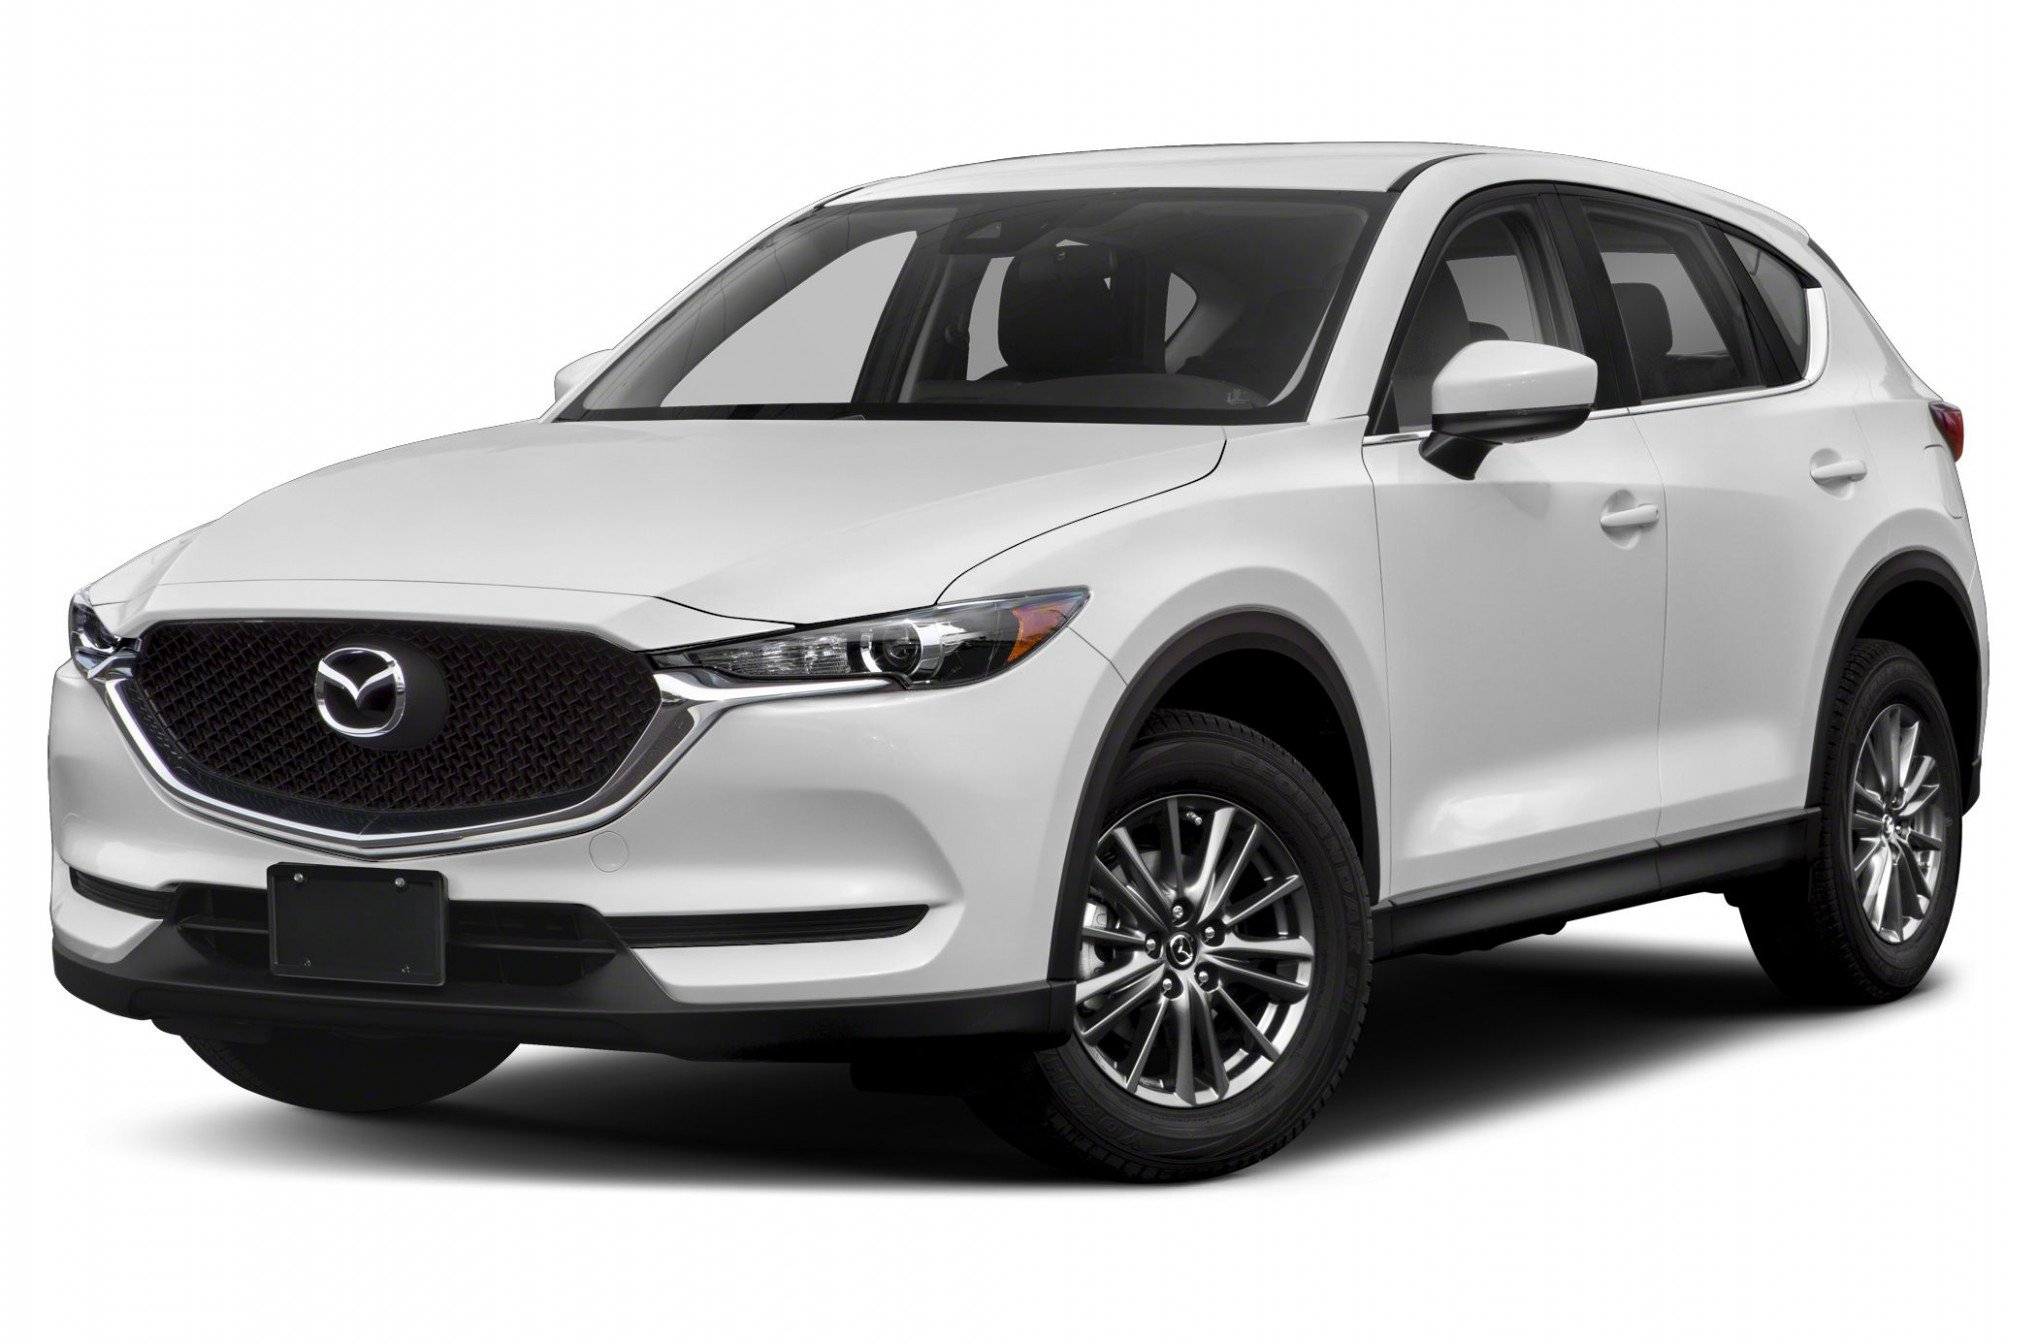 10 Mazda CX-10 Safety Features - 2020 mazda lane keep assist